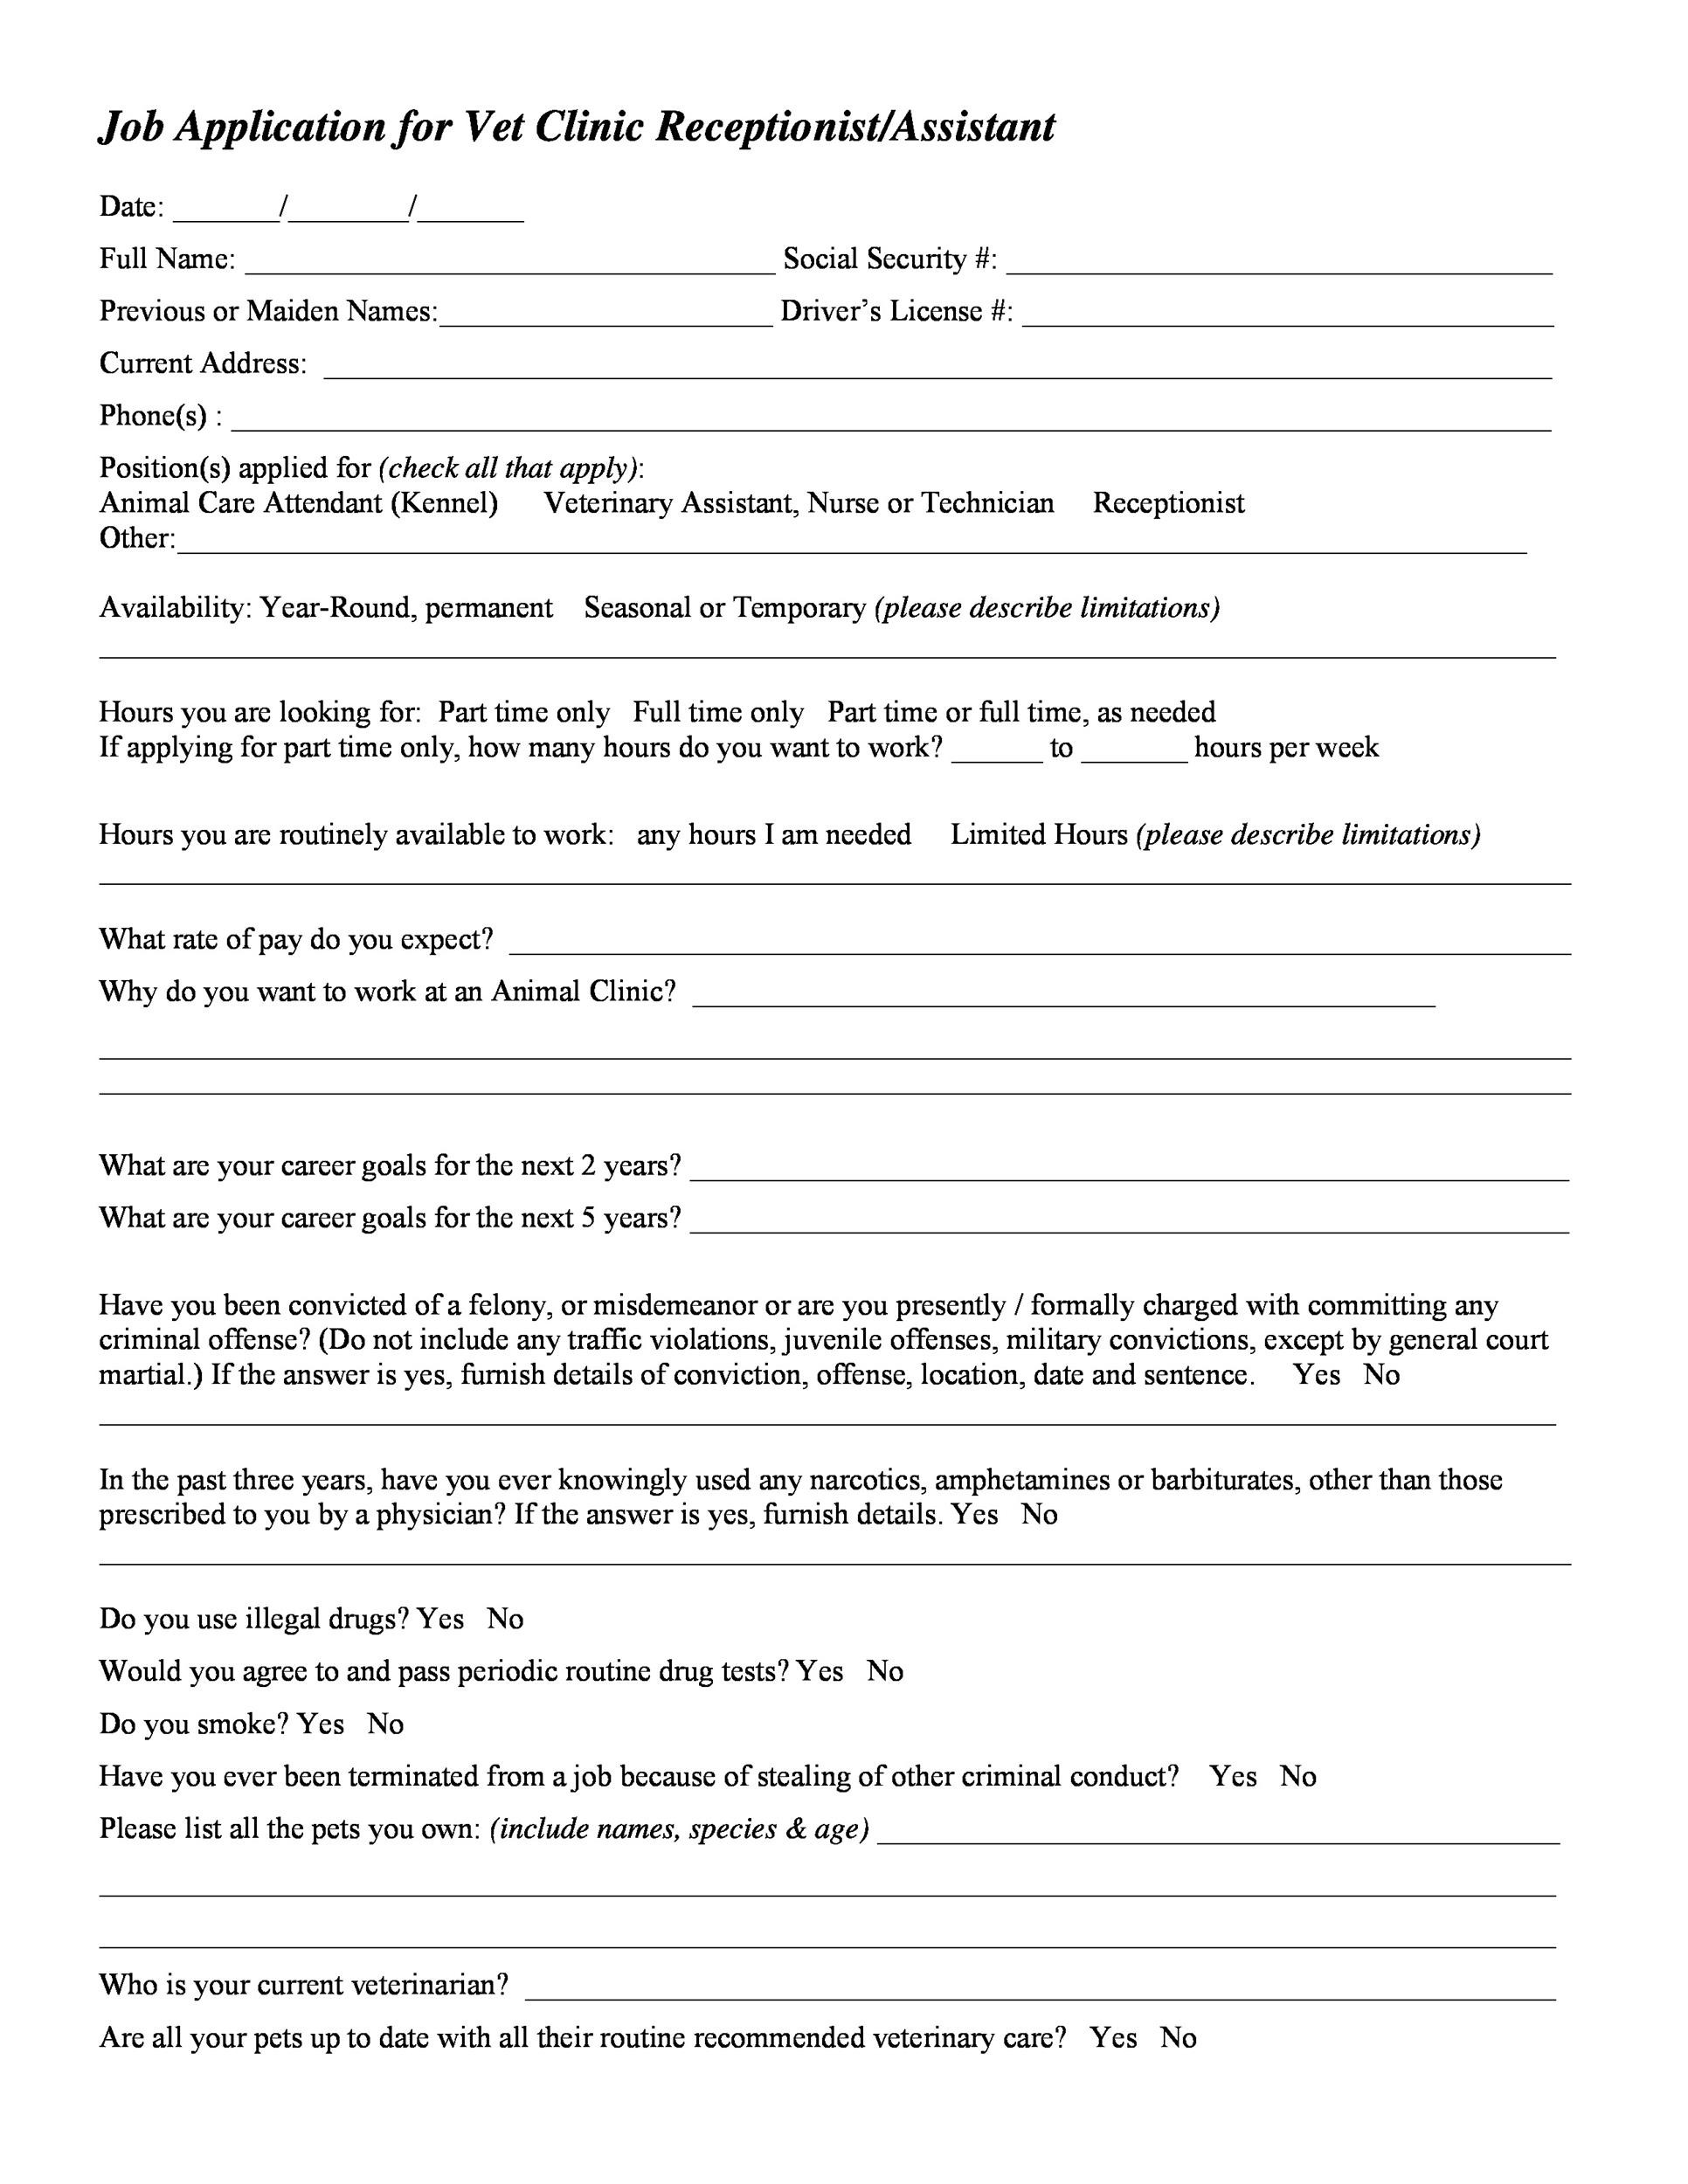 Simple Job Application Template Free from templatelab.com